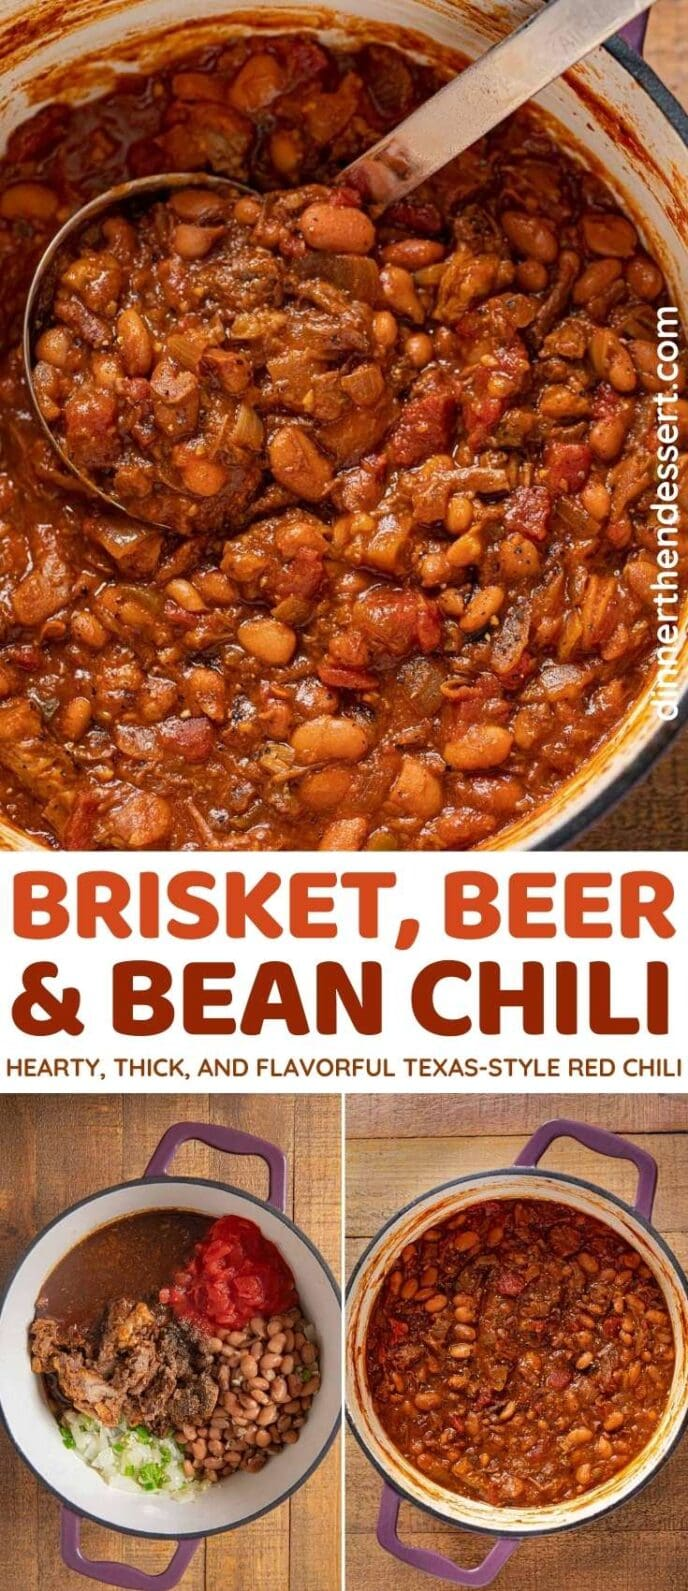 Brisket Beer and Bean Chili collage